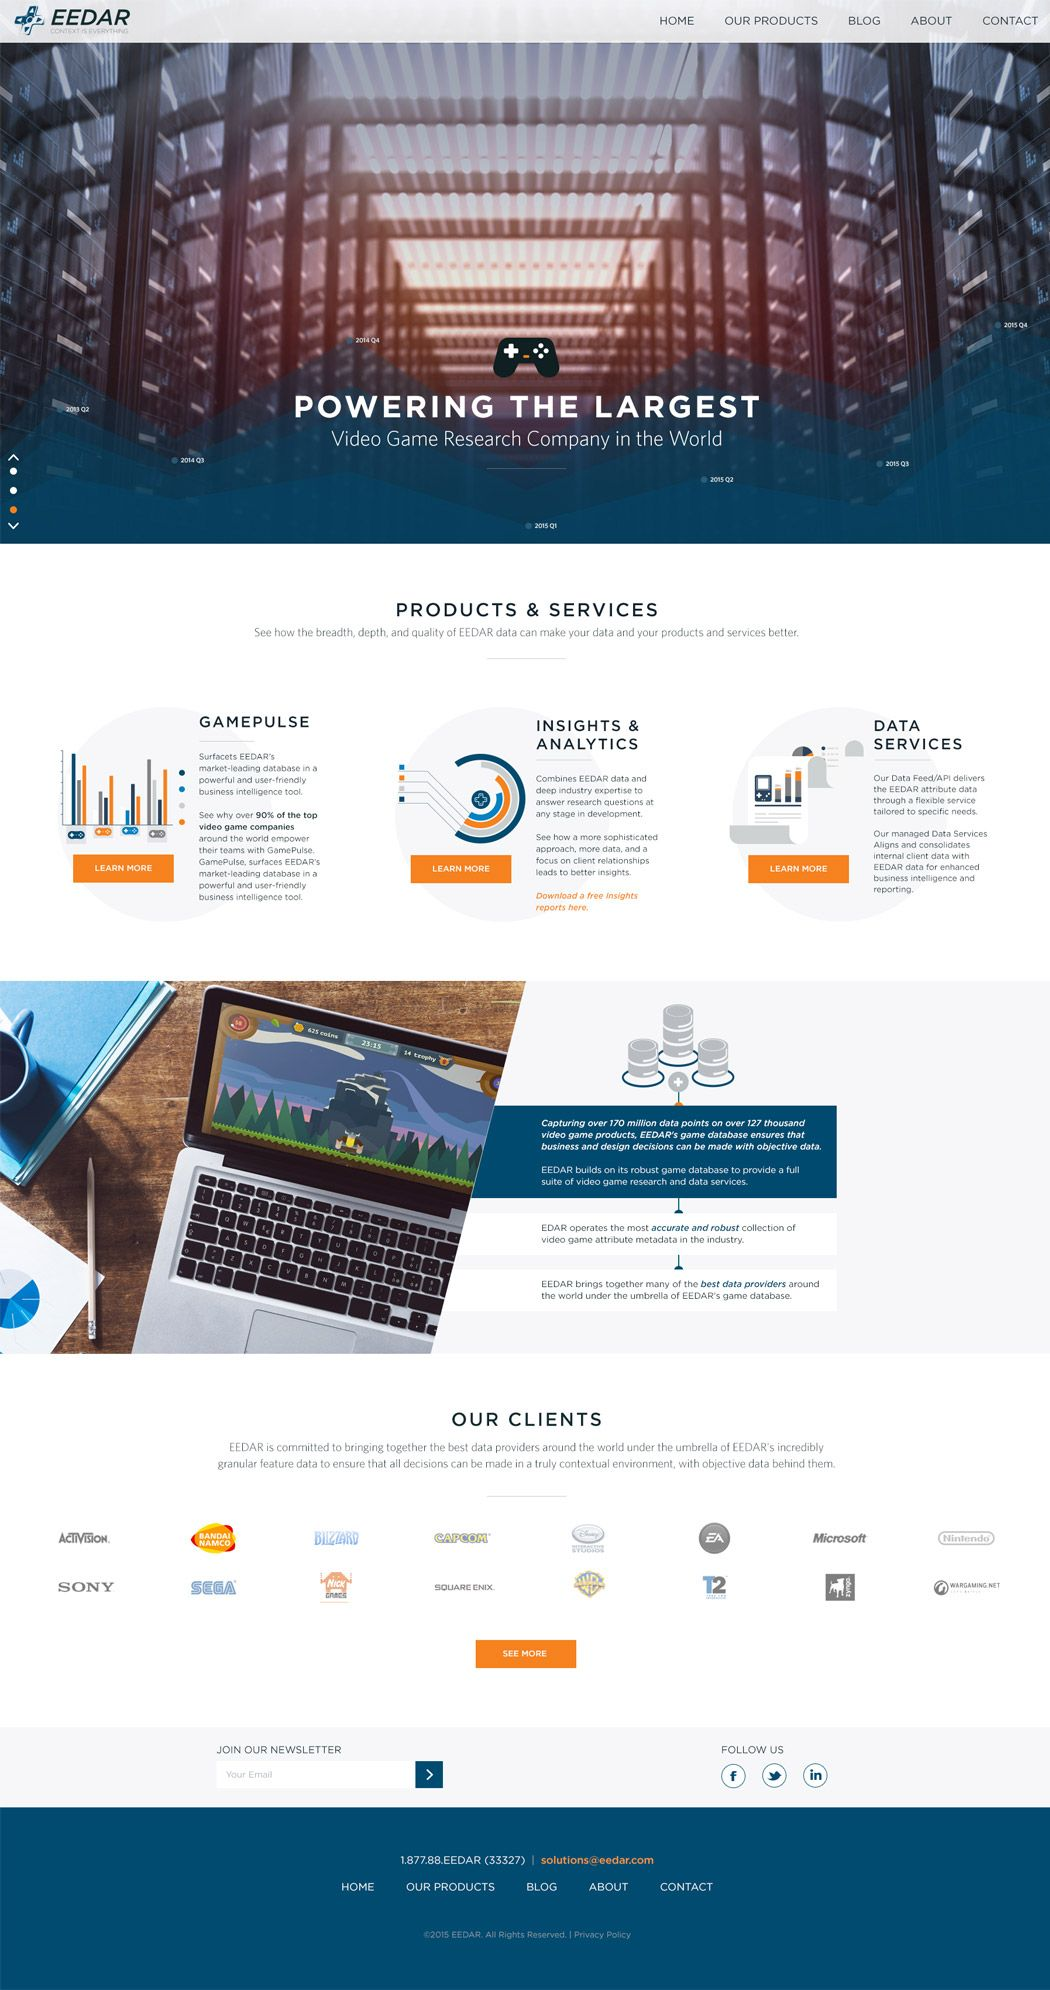 Eedar Powers The Largest Video Game Research Company In The World We Used Their Strong Existing Branding Presence To Website Design Custom Site Service Design